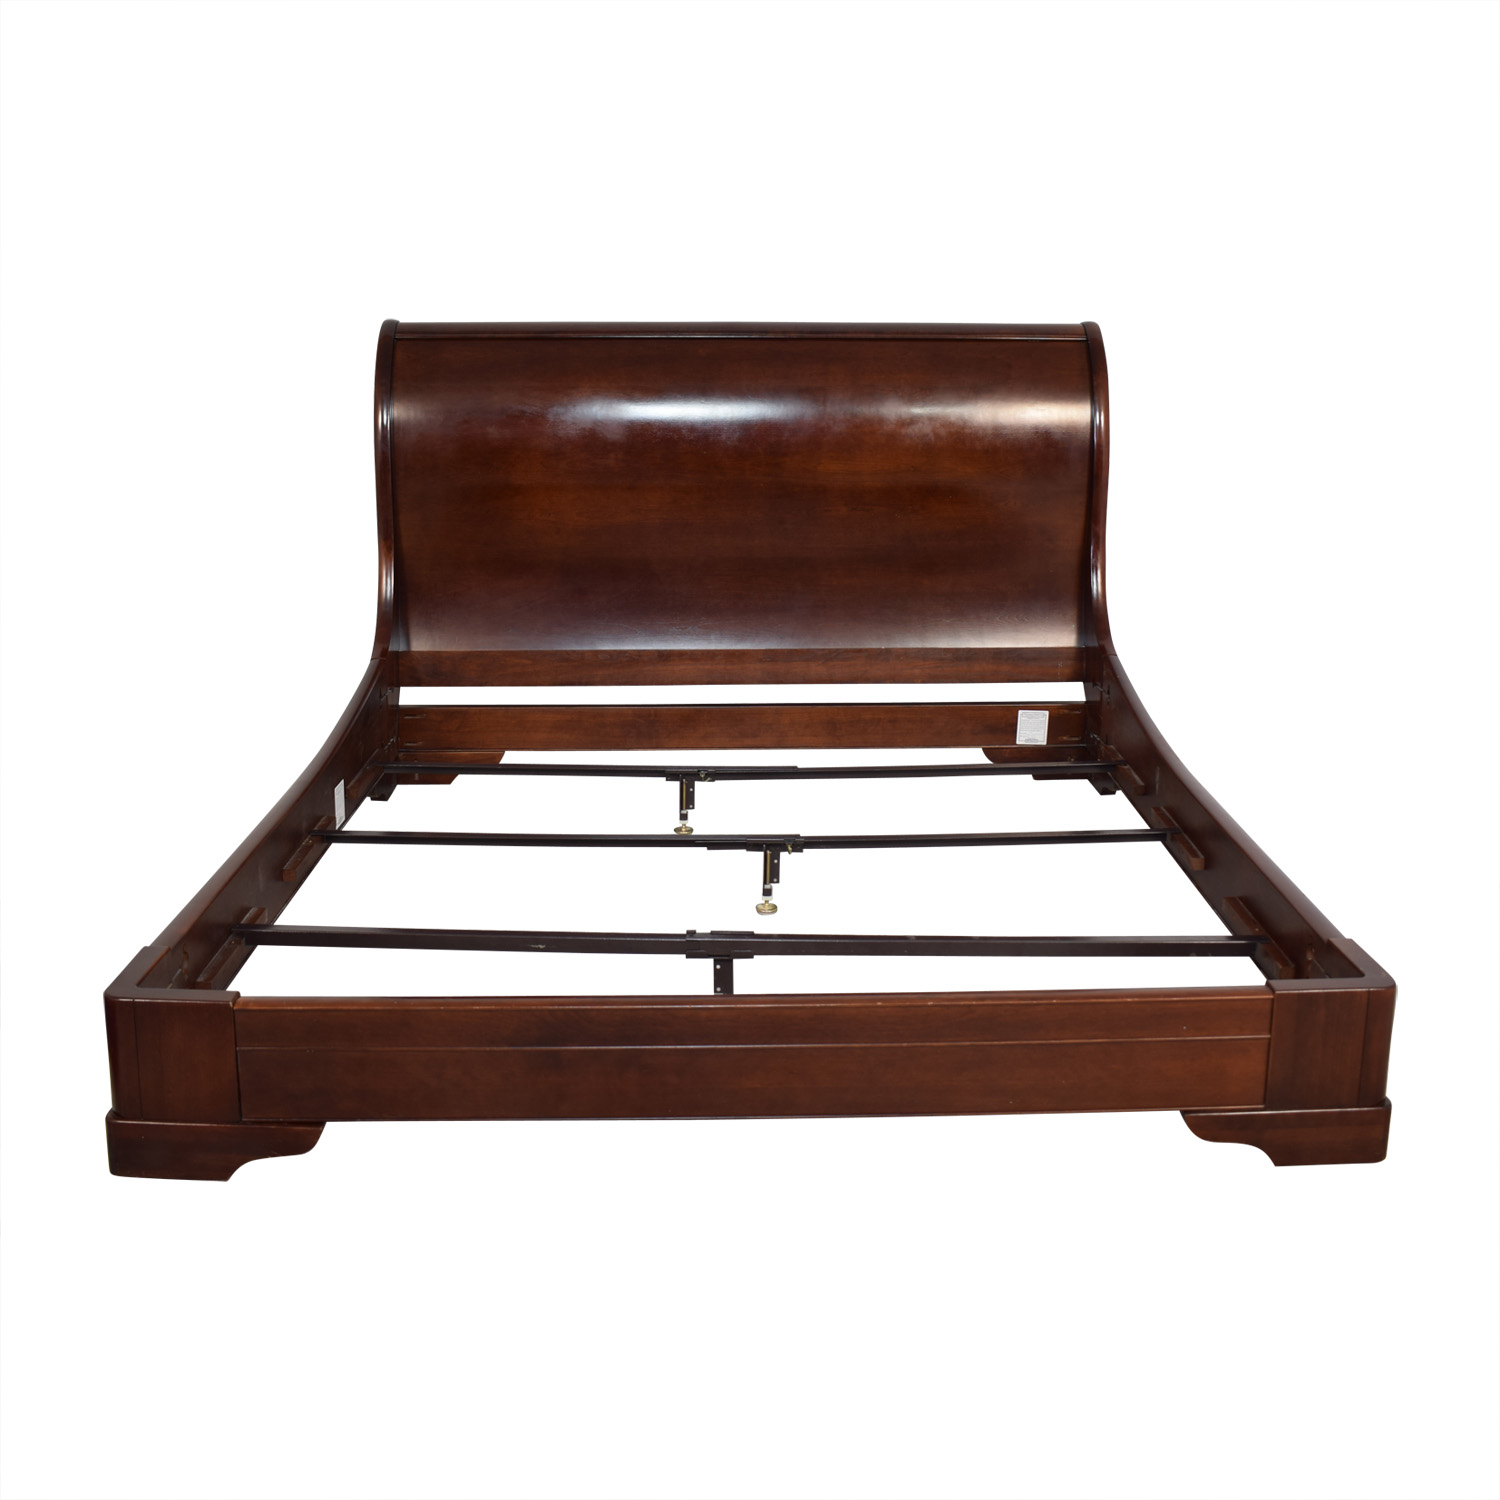 Restoration Hardware Restoration Hardware Marston King Sleigh Bed for sale